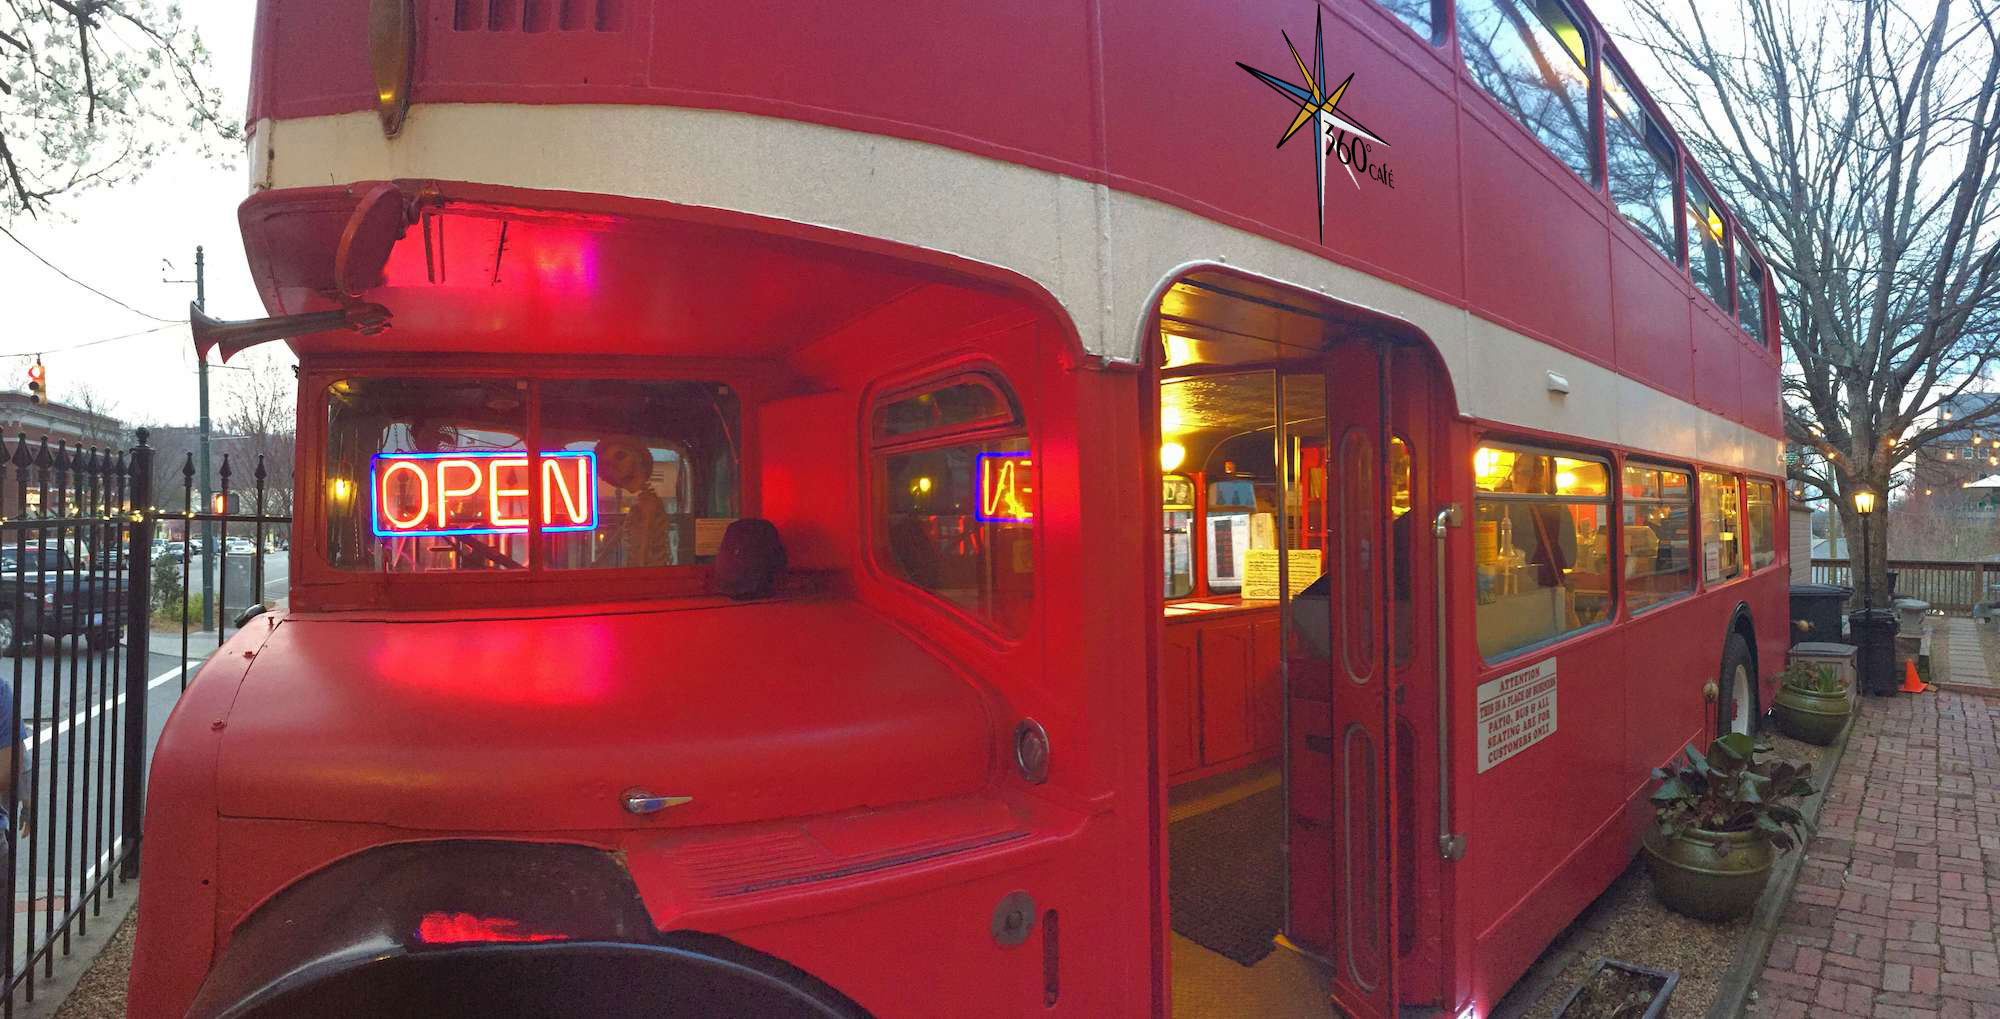 OR - A DOUIBLE DECKER BUS?